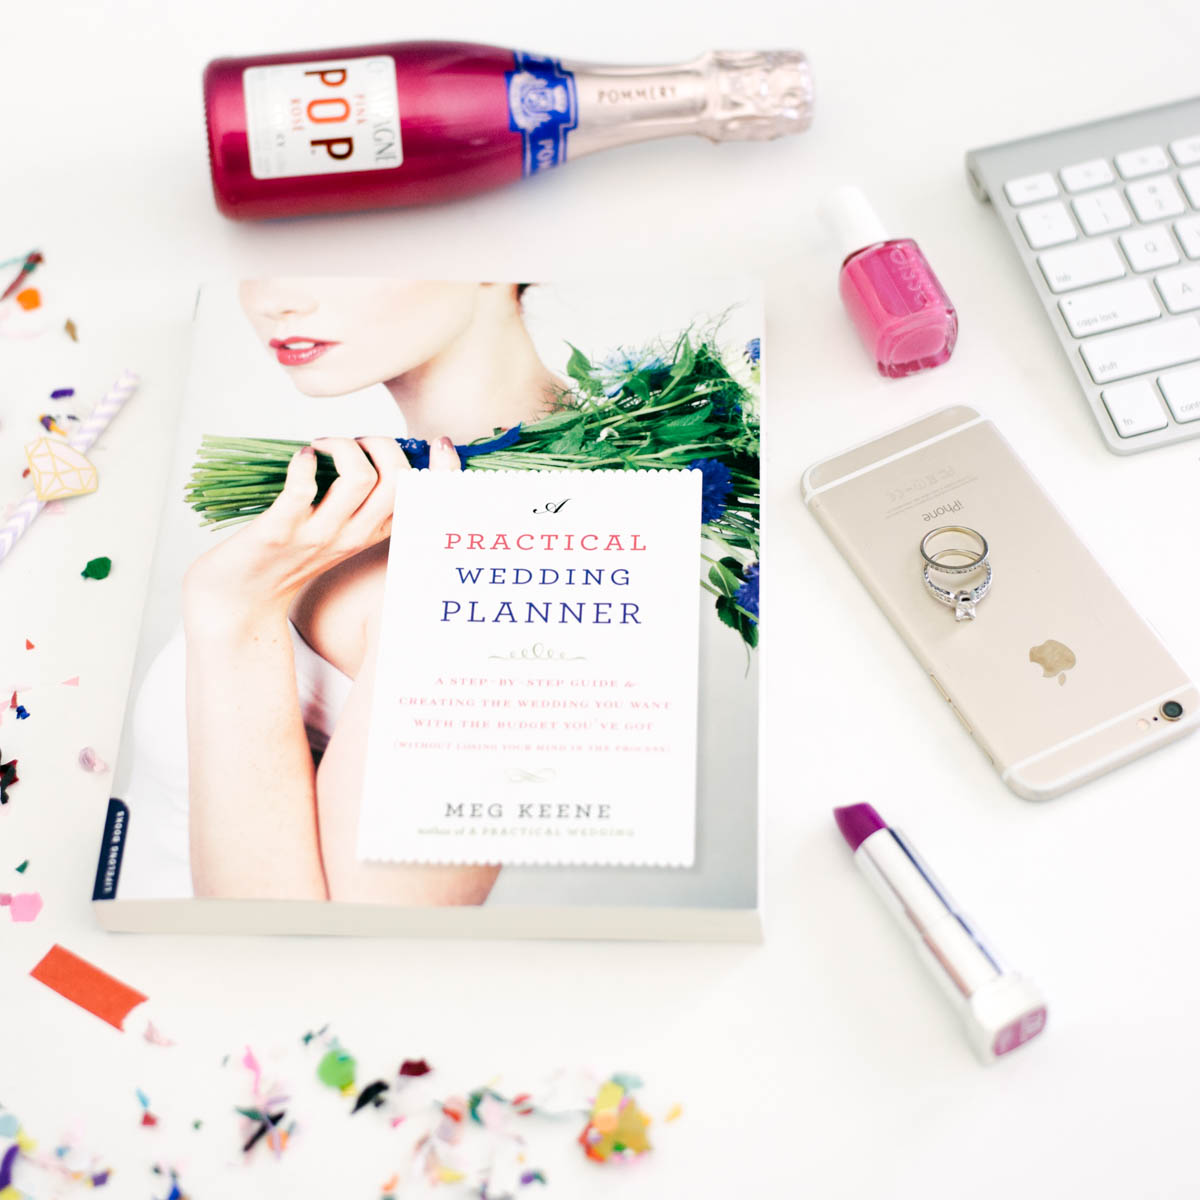 the a practical wedding planning guide on a white desk surrounded by champagne, makeup an iphone and confetti